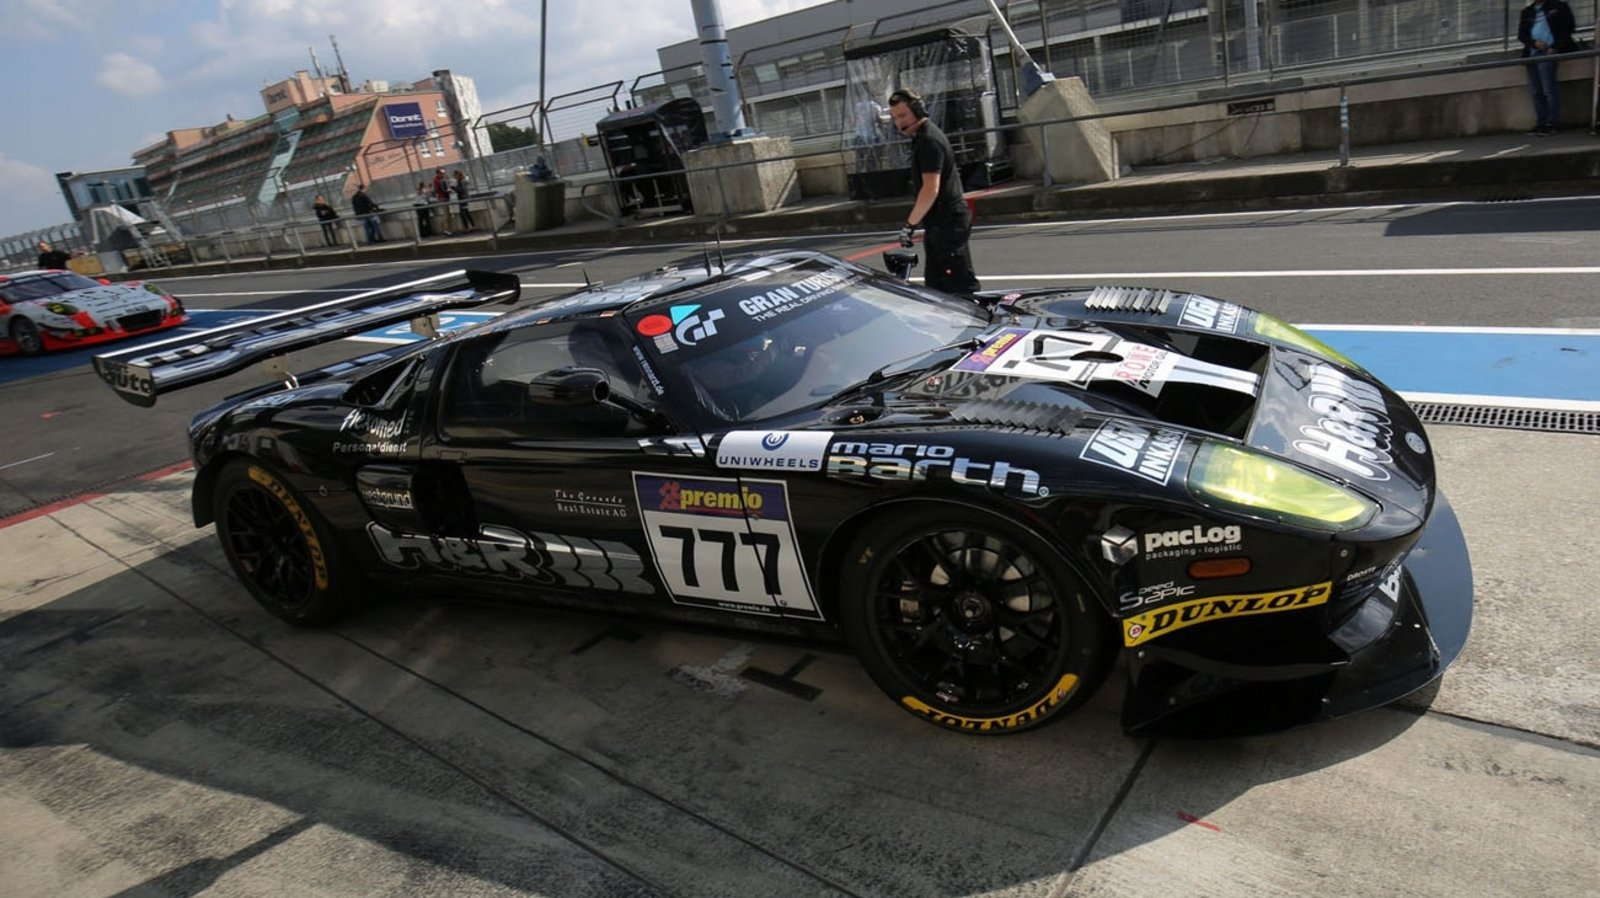 Ford Gt Racer Blitzes To A Vln Record Lap Time At The